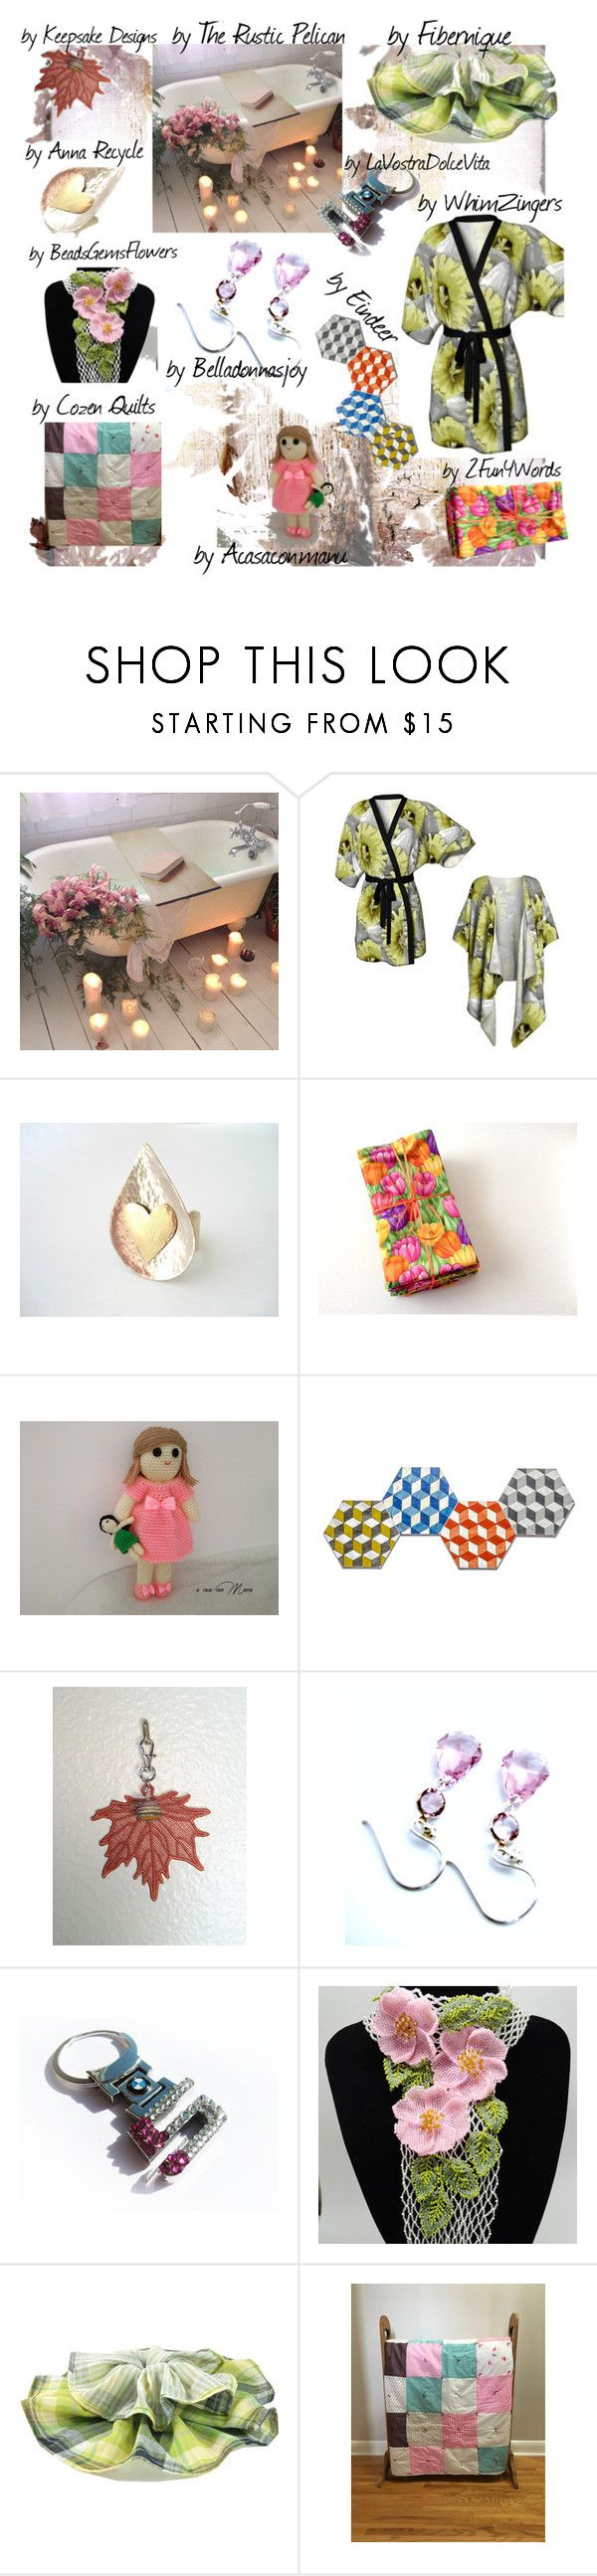 Happy Tuesday Etsy Friends by belladonnasjoy on Polyvore featuring Wild Rose, BMW, Hostess, Bambola, modern and rustic